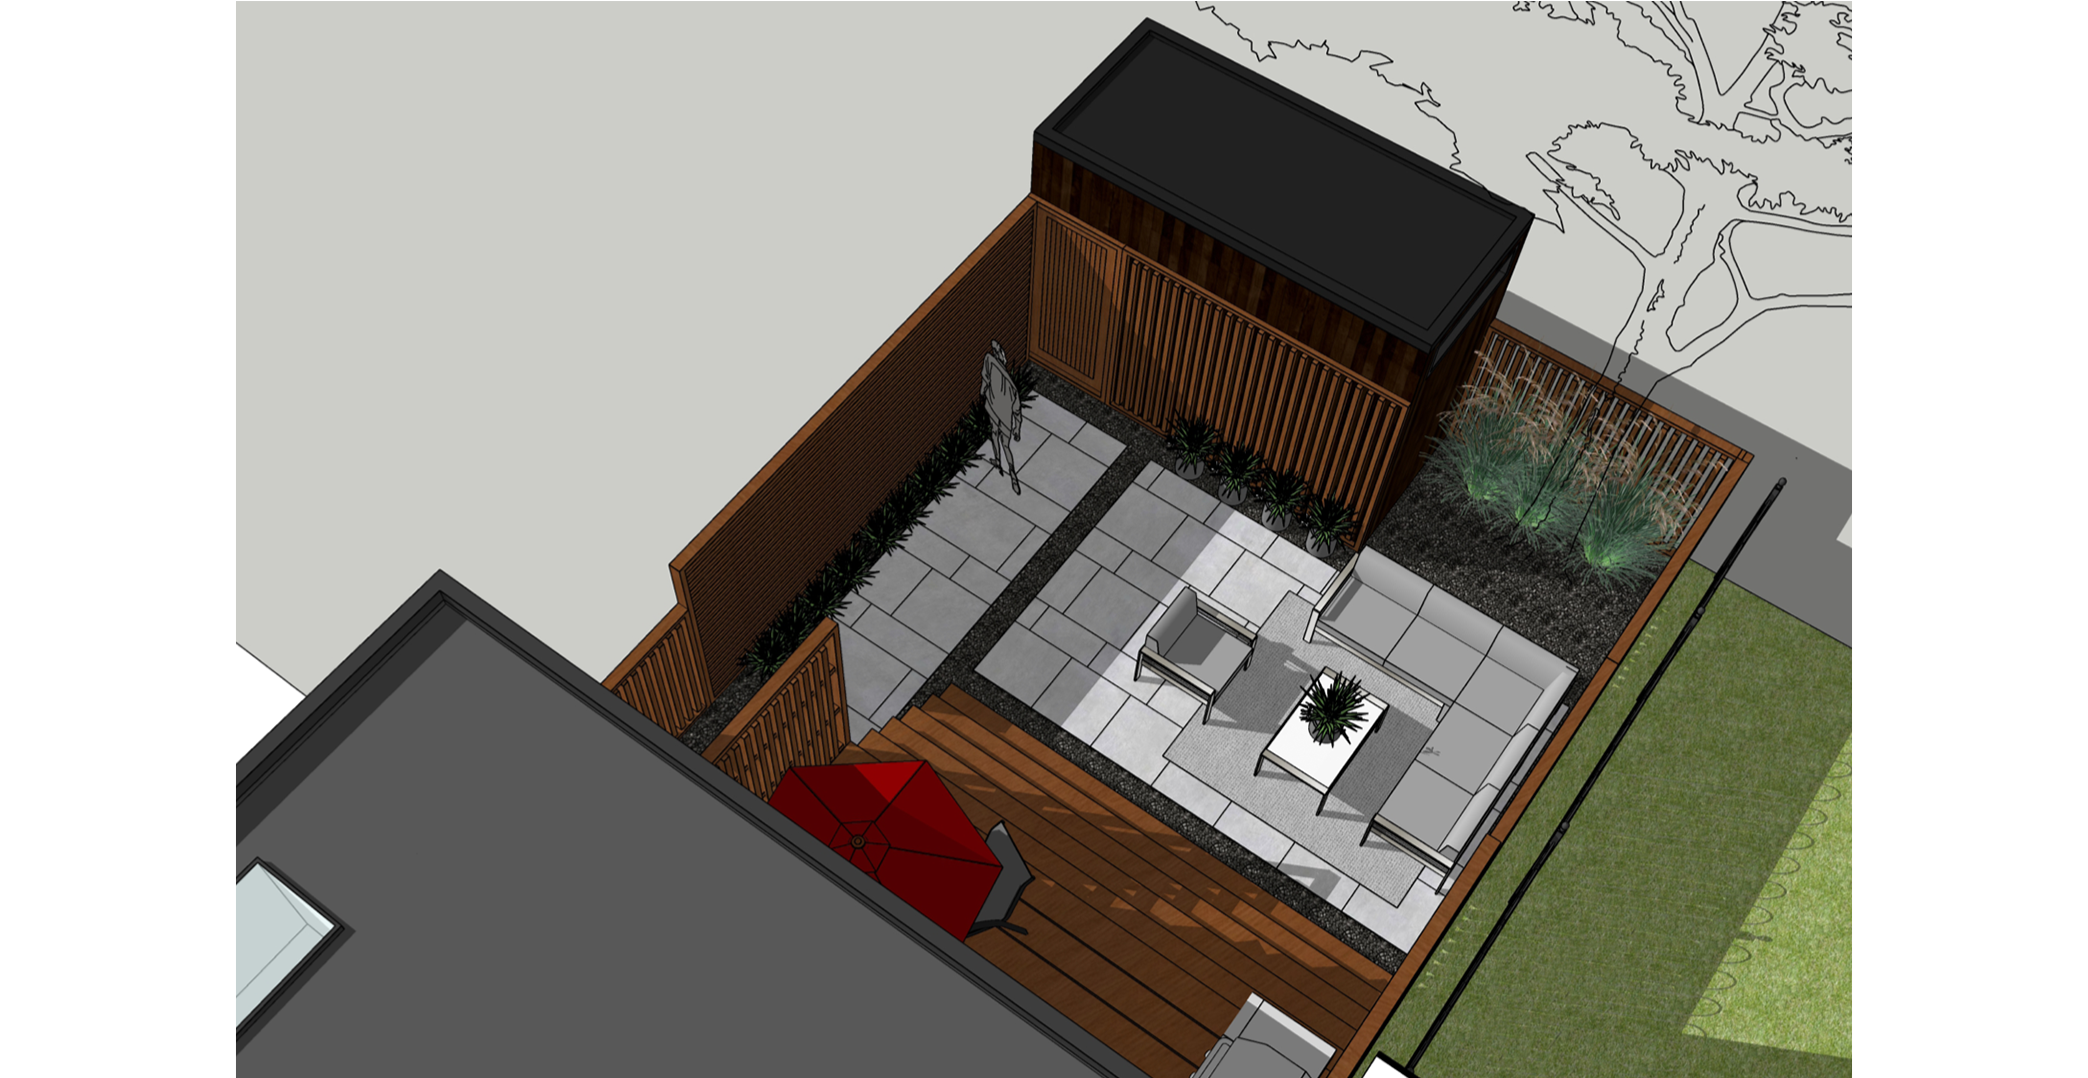 thesearchitects-house132-house130-4.png